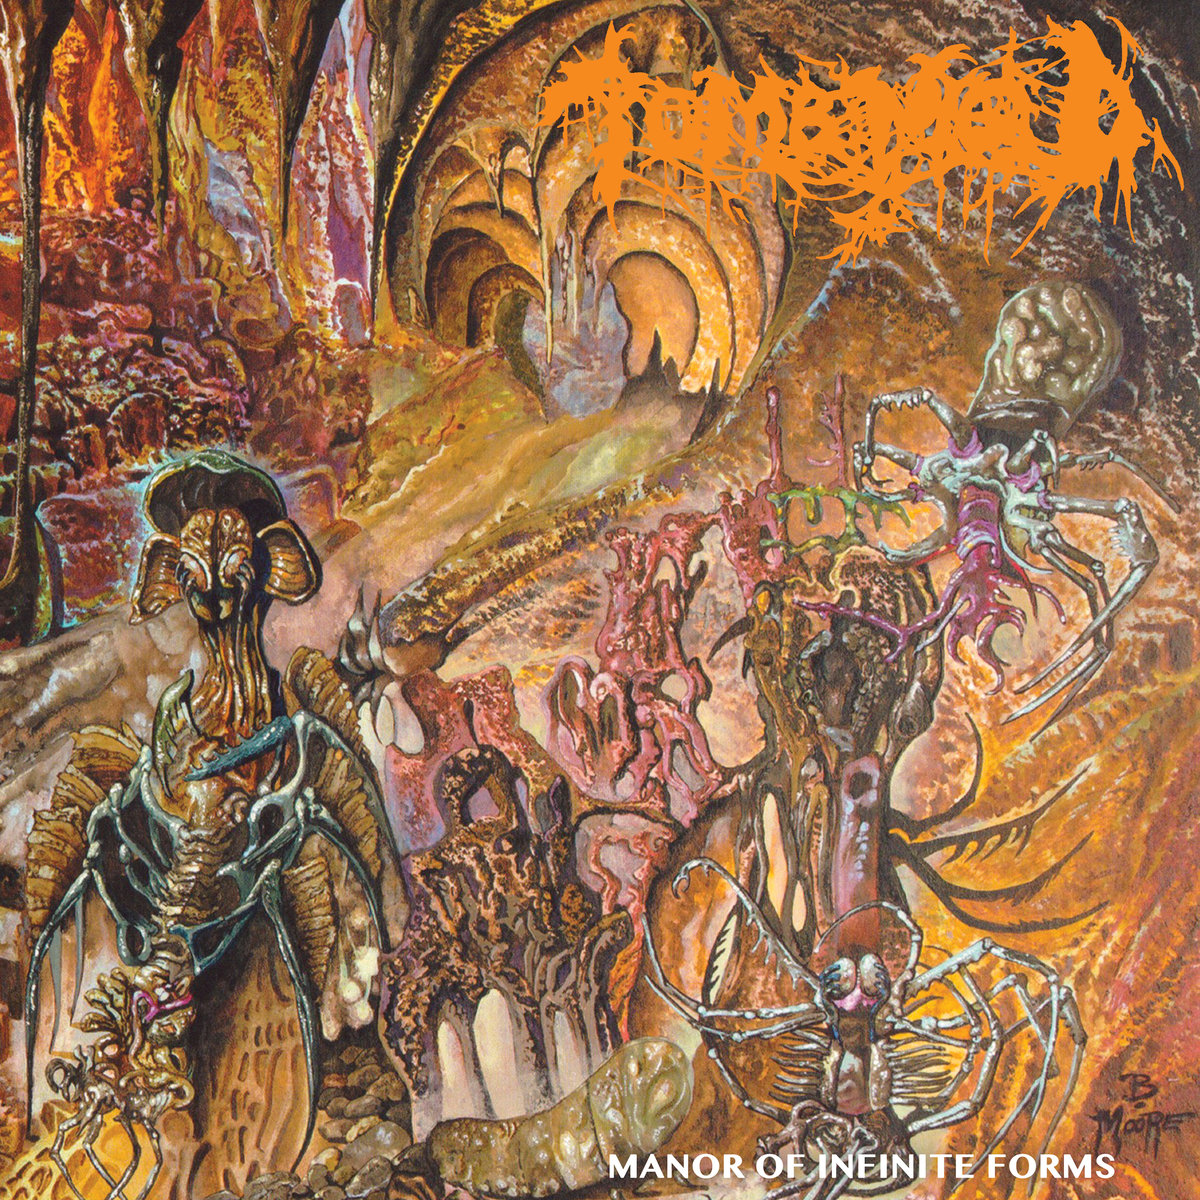 Manor of infinite forms by tomb mold